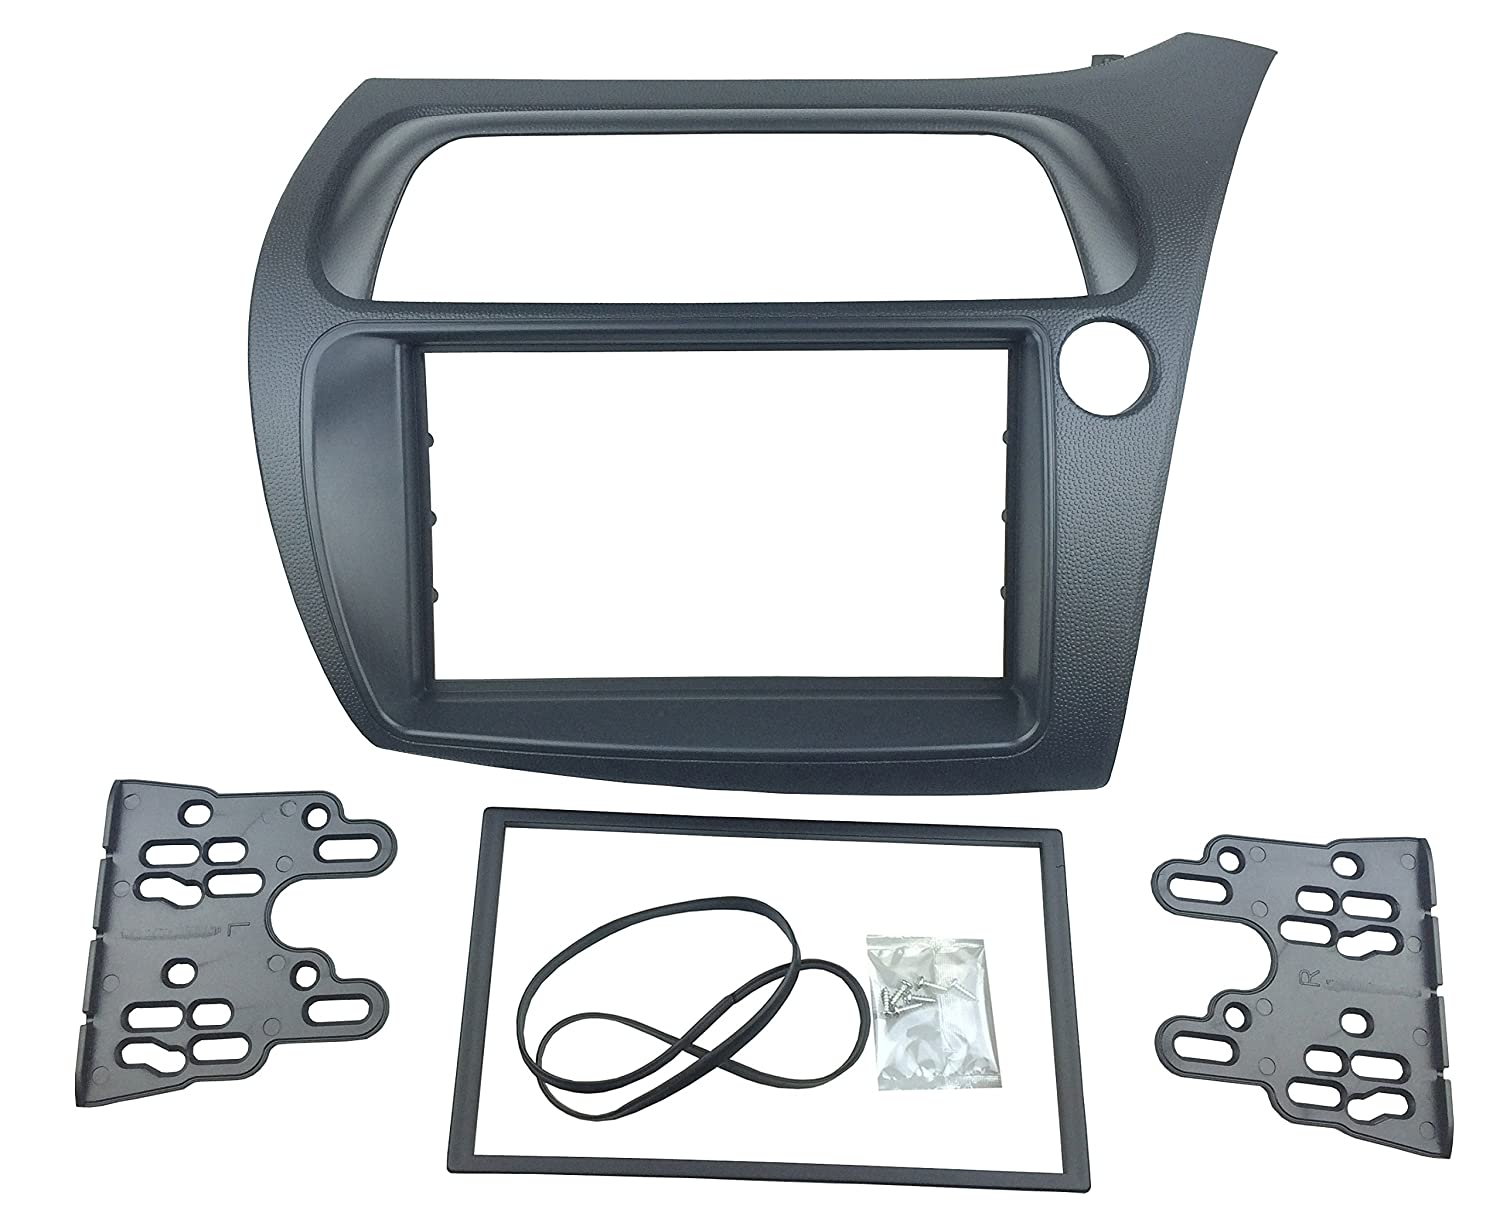 MAXIOU DKM013HO Double Din Stereo Facia Adaptor with Iso Wiring Cable Aerial (178*102Mm Opening) MAXIOU Auto Part Co. Ltd.